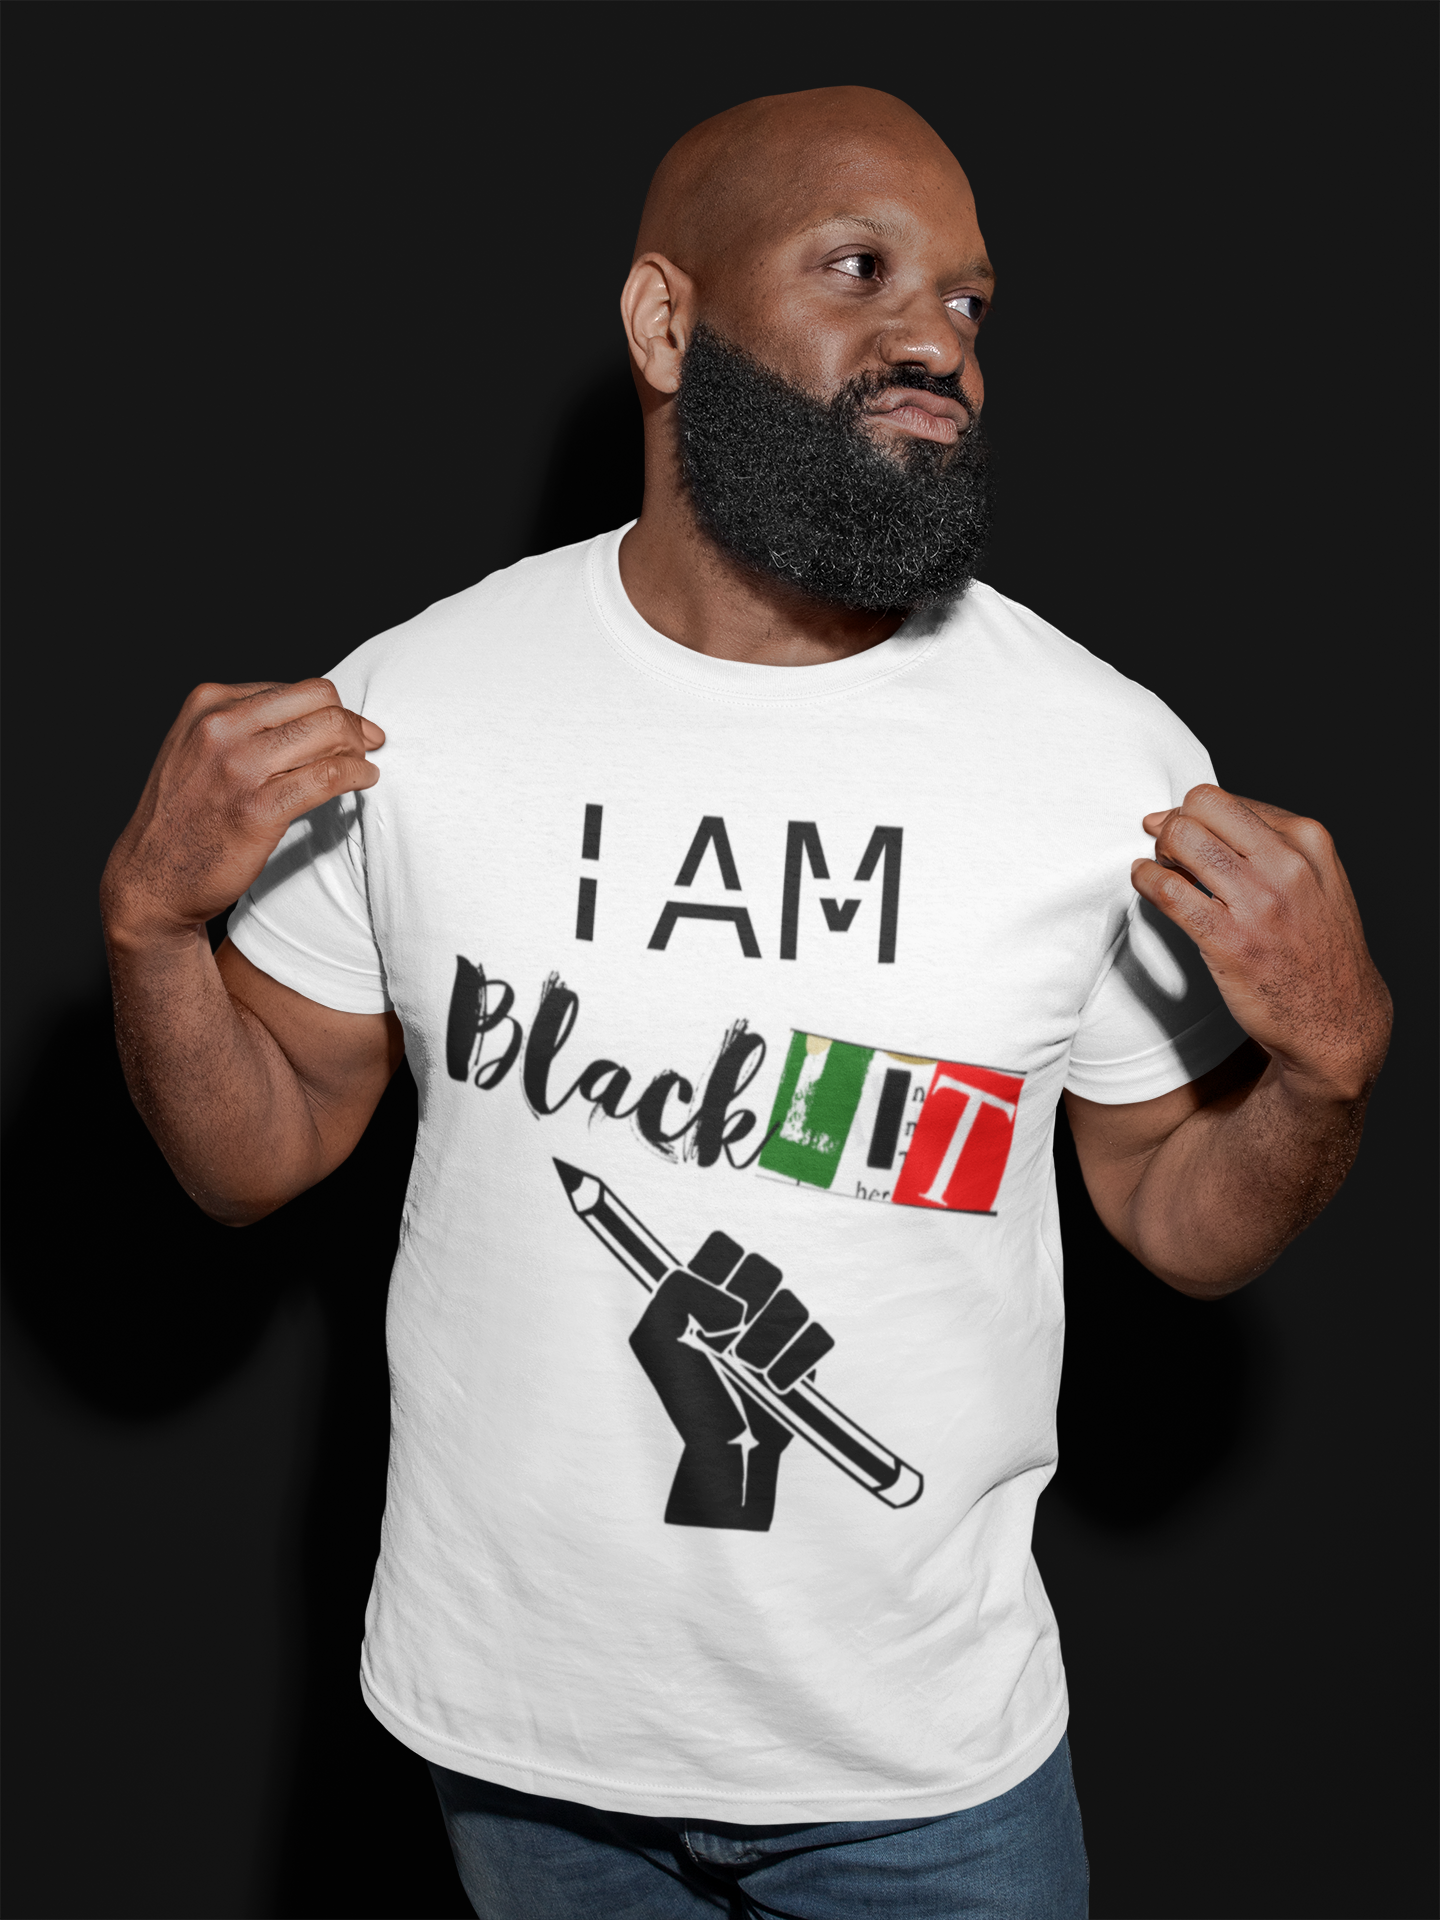 mockup-of-a-bearded-man-showing-off-his-t-shirt-21534